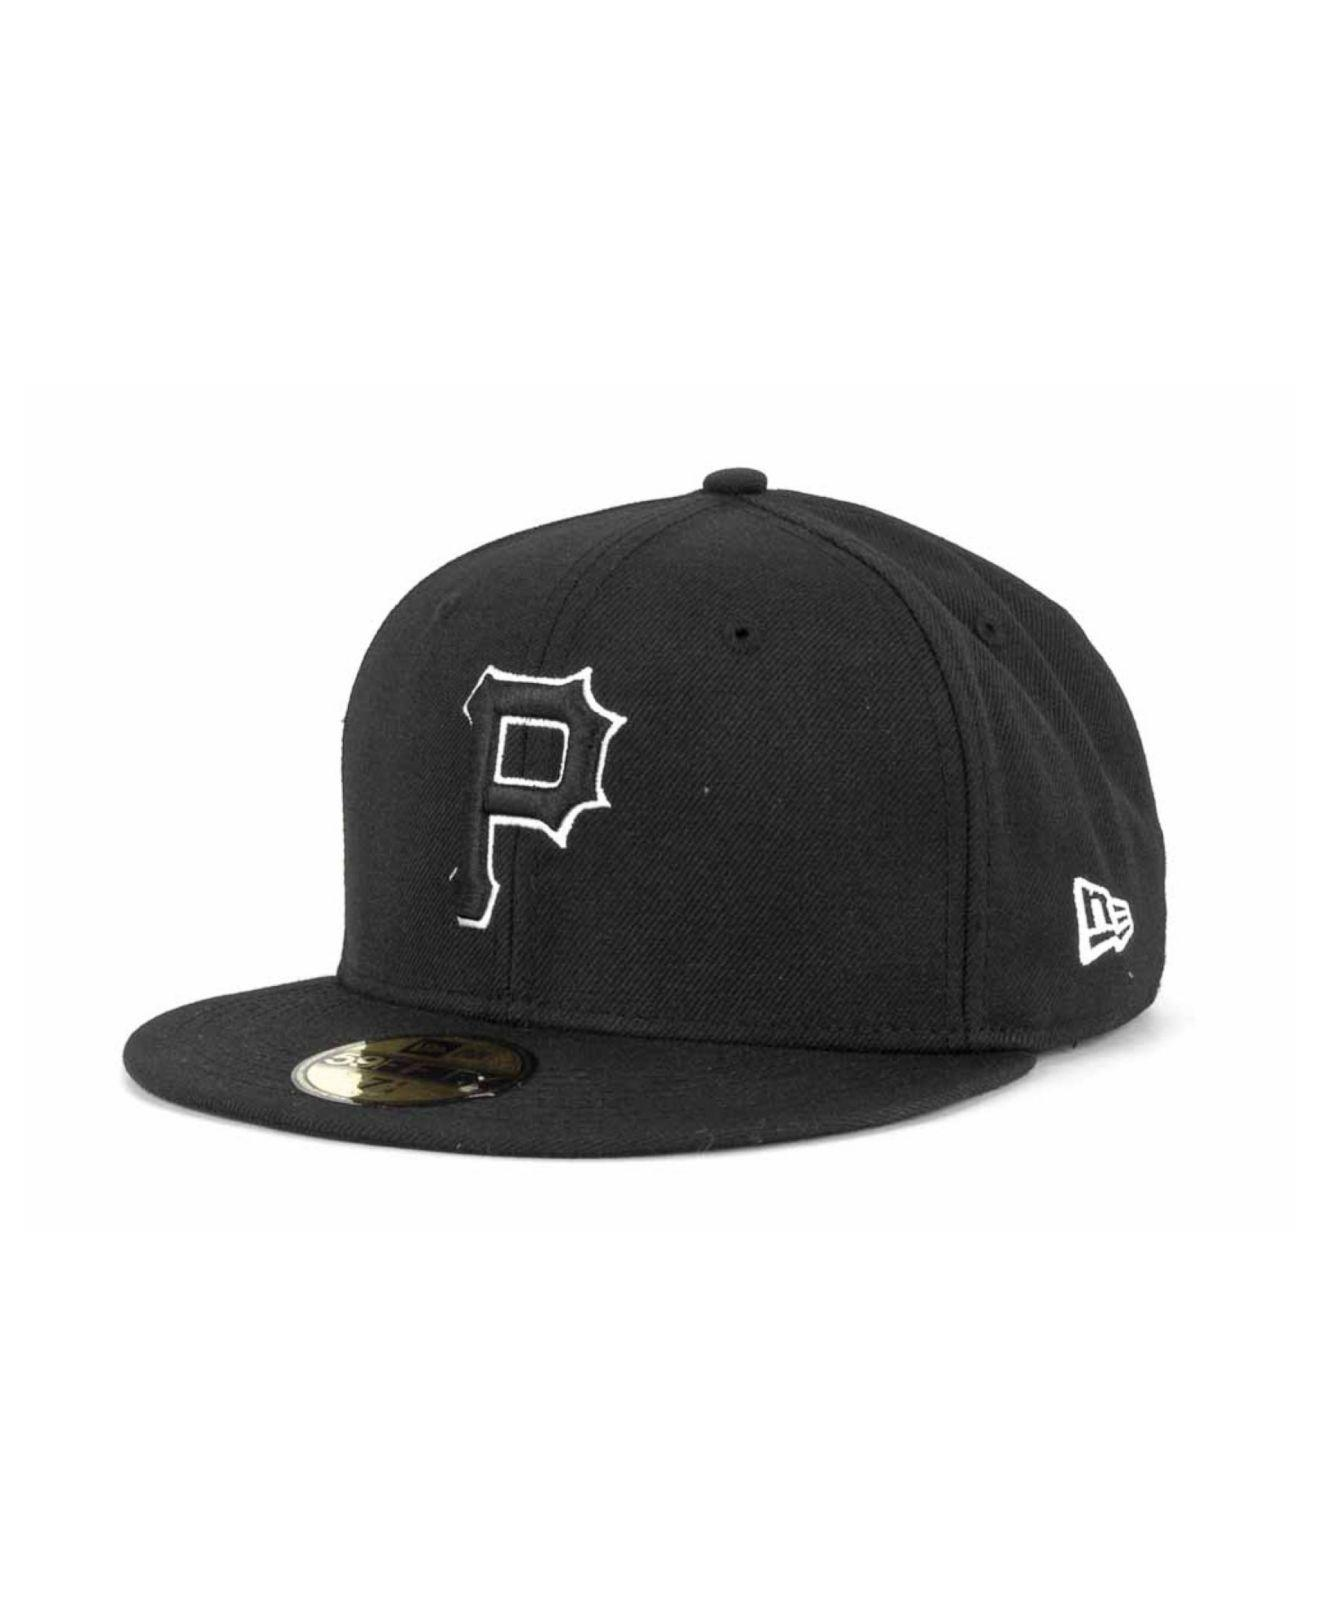 reputable site 1c1e5 b35f8 KTZ. Men s Pittsburgh Pirates Black And White Fashion 59fifty Cap